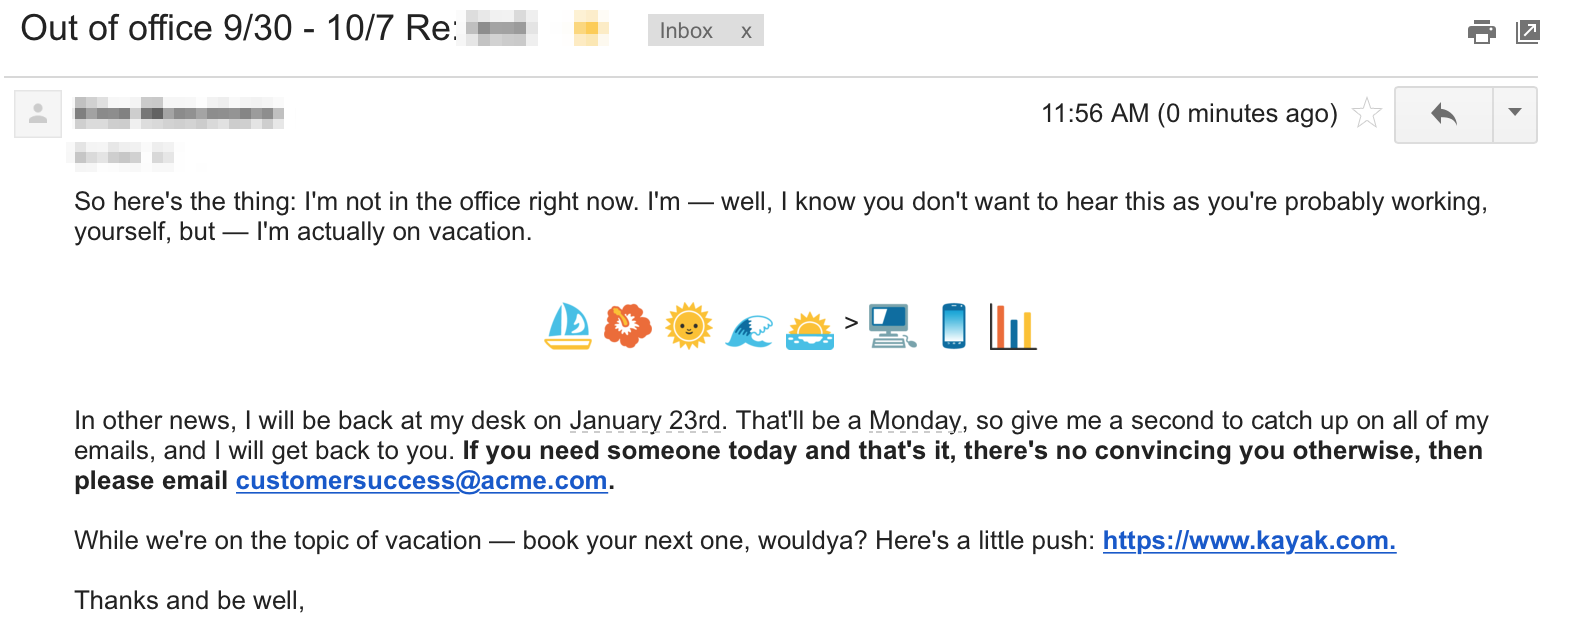 out of office example with emojis